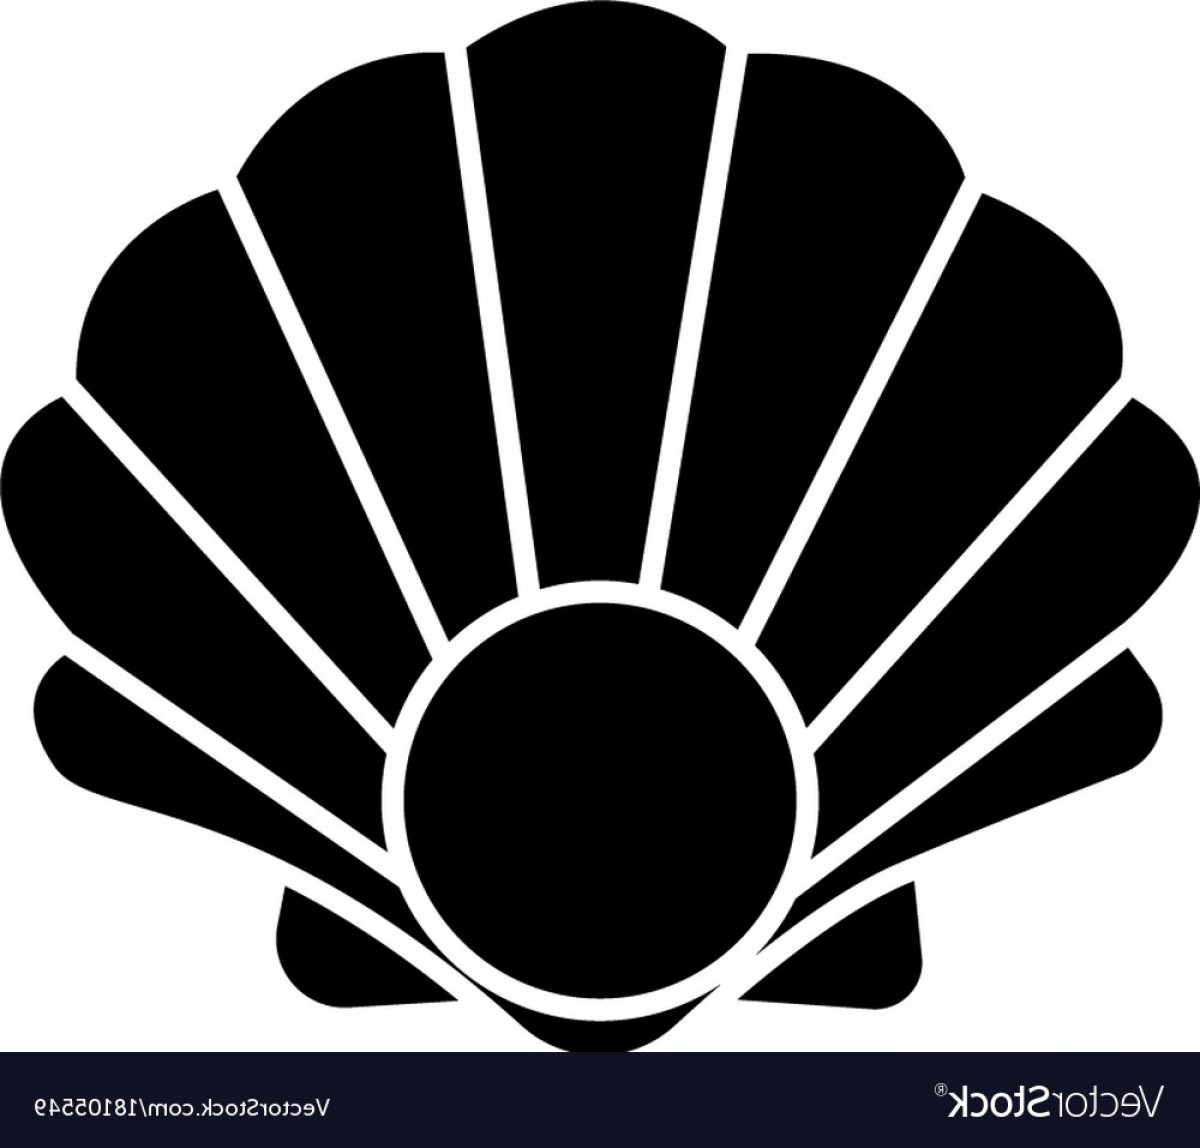 Shell Vector Icons: Pearl Shell Icon Black Sign Vector